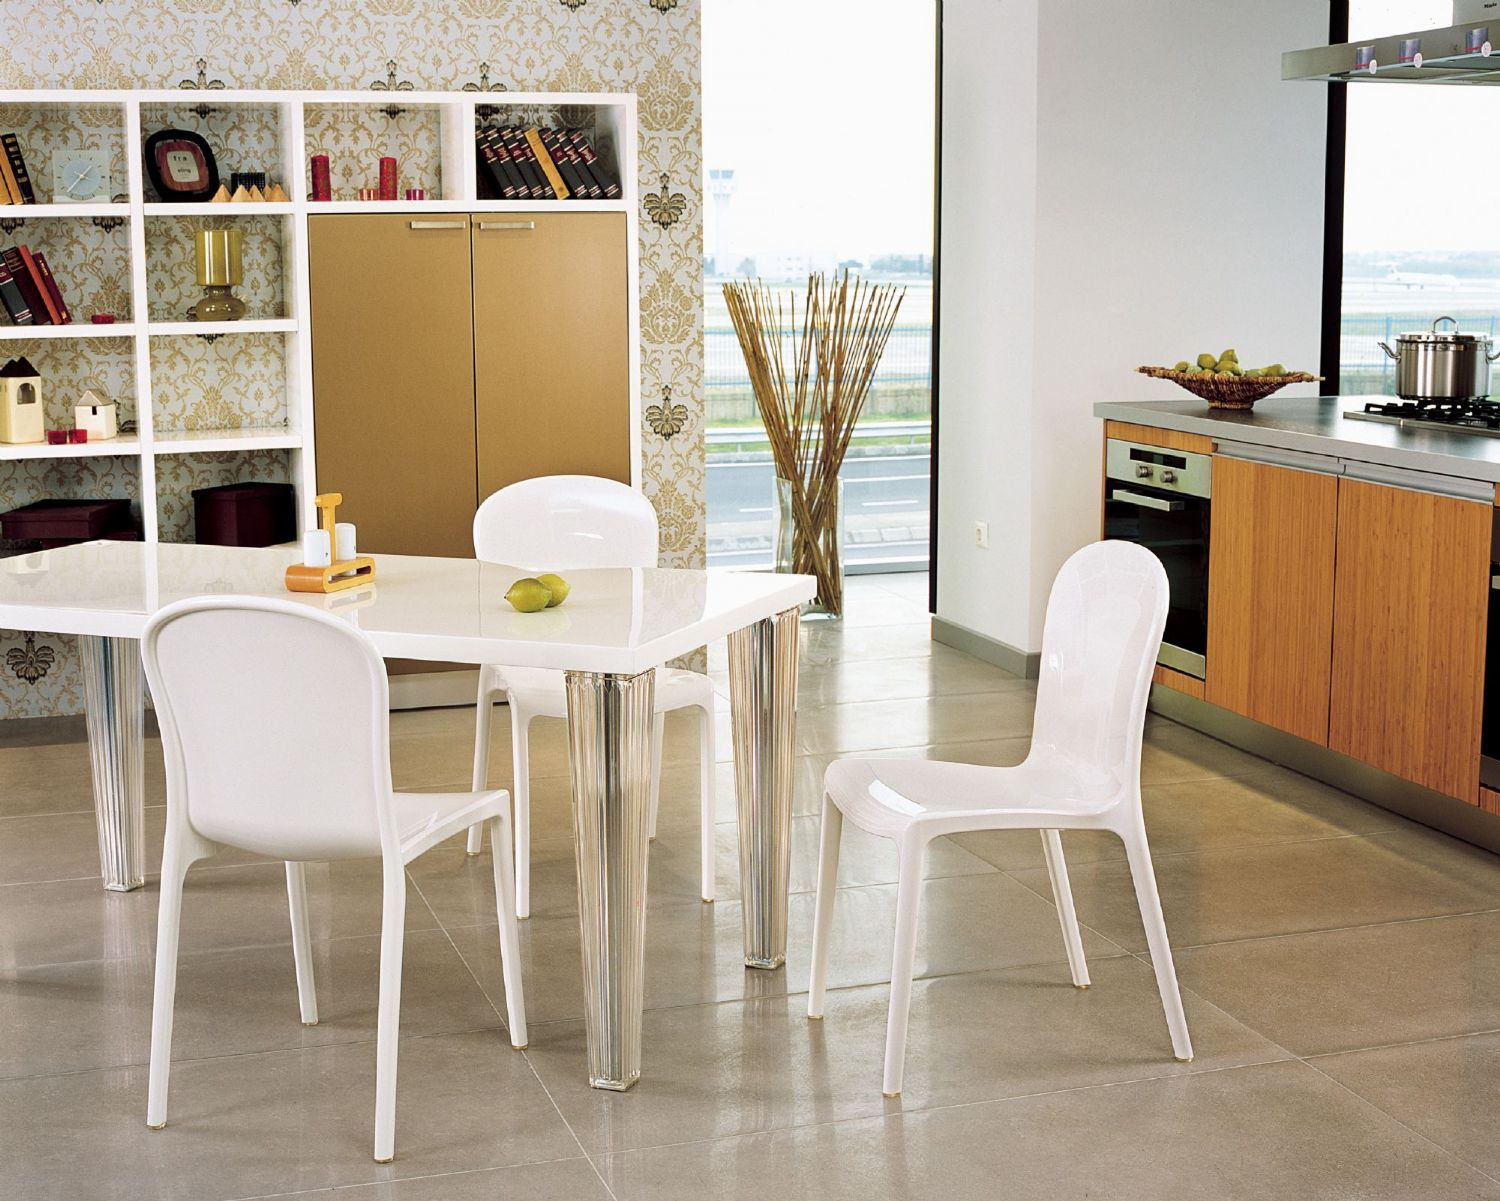 Victoria Polycarbonate Modern Dining Chair White ISP033-GWHI - 10